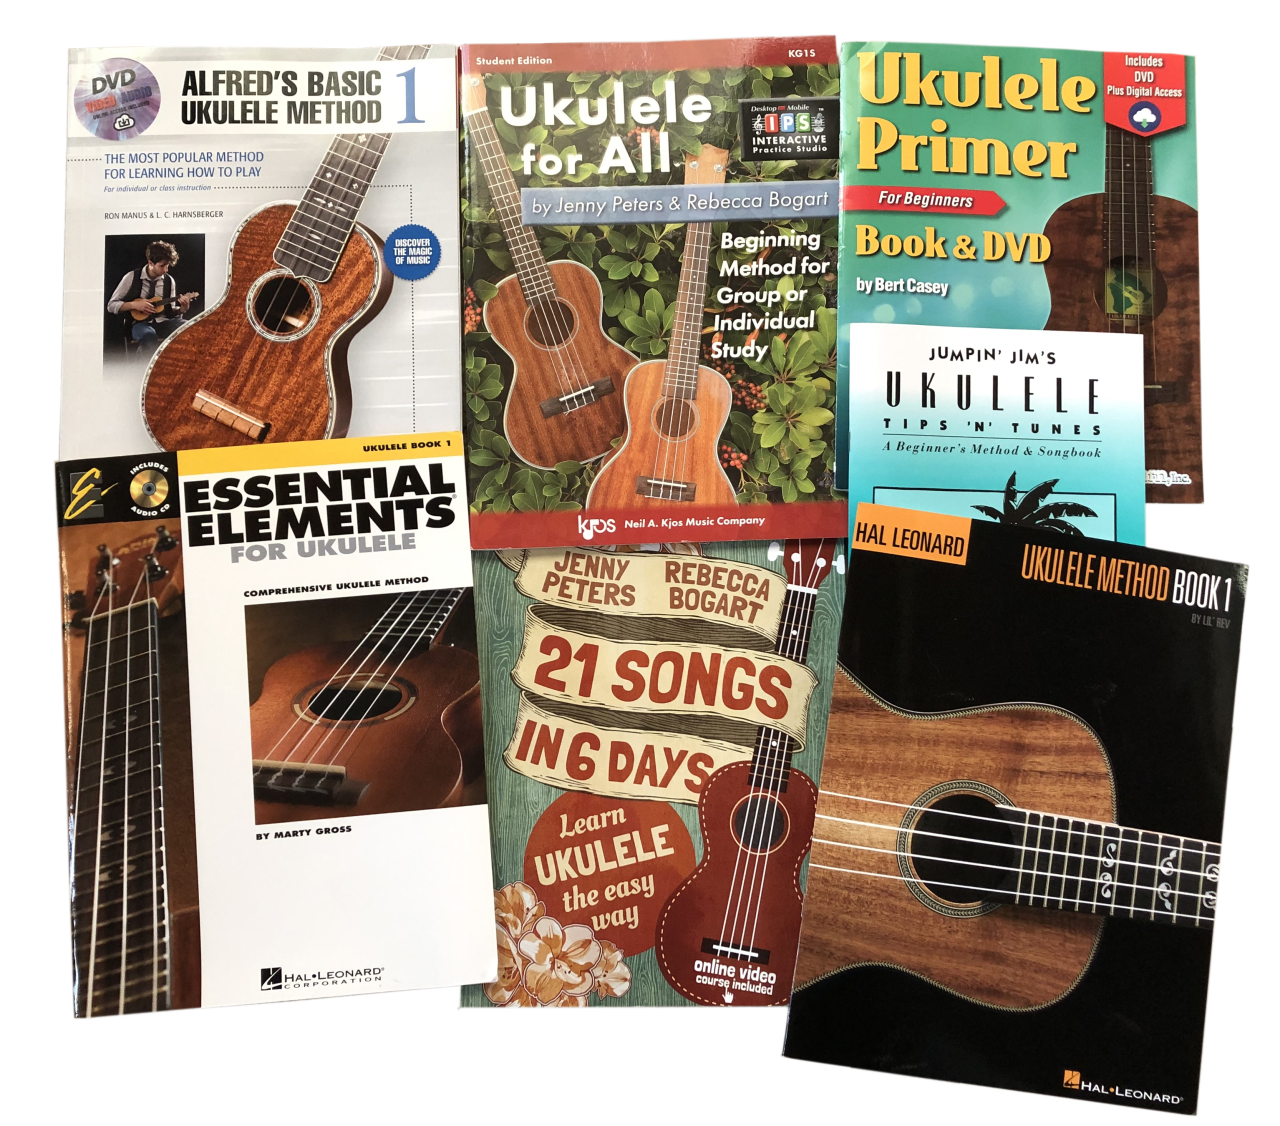 Beginning Ukulele Book Reviews Check out all these great